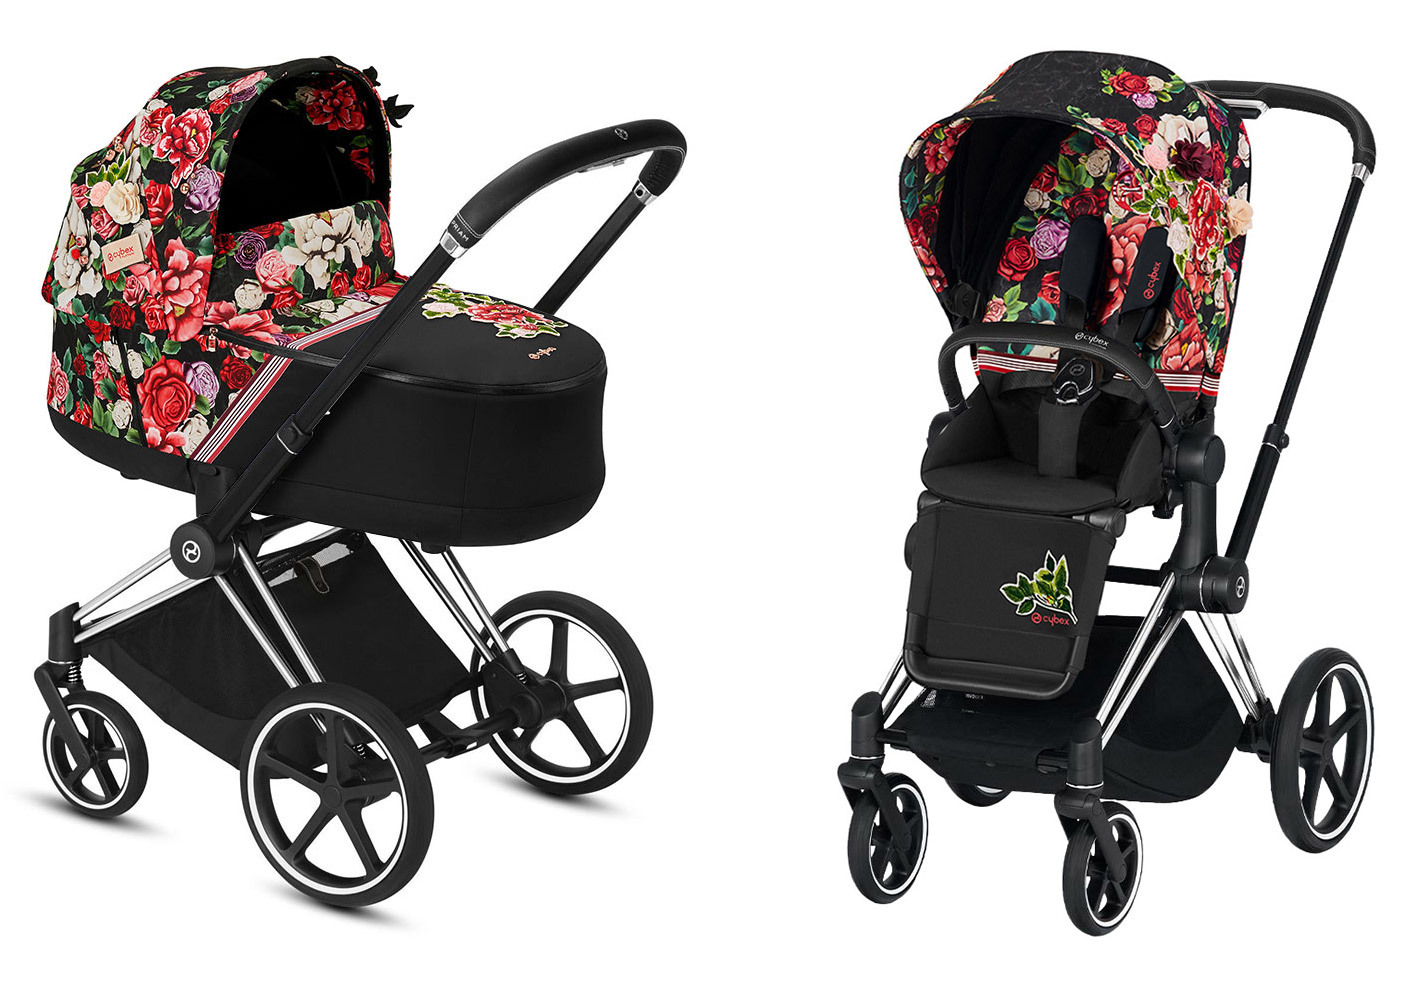 Цвета Cybex Priam 2 в 1 Детская коляска Cybex Priam III 2 в 1 FE Spring Blossom Dark шасси Chrome Black priam-iii-2-in-1-spring-blossom-dark-chrome-black.jpg